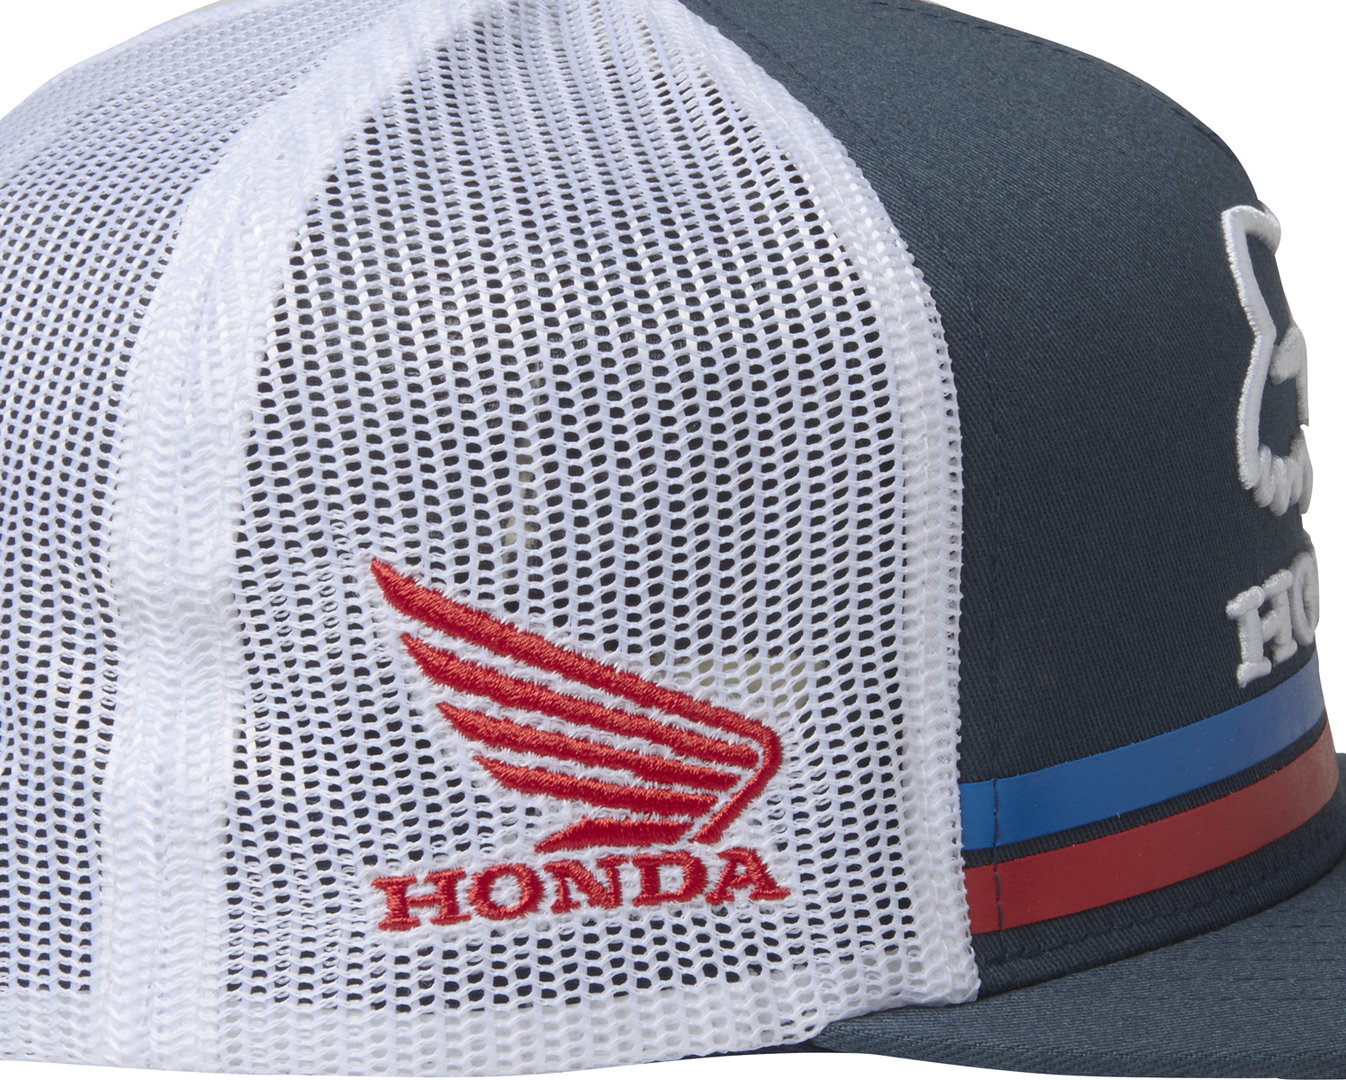 sports shoes 0870e 2a9ee ... Fox Racing HRC Fox Honda Snapback Hat Cap Unisex Motocross Style  22996-007 NVY ...